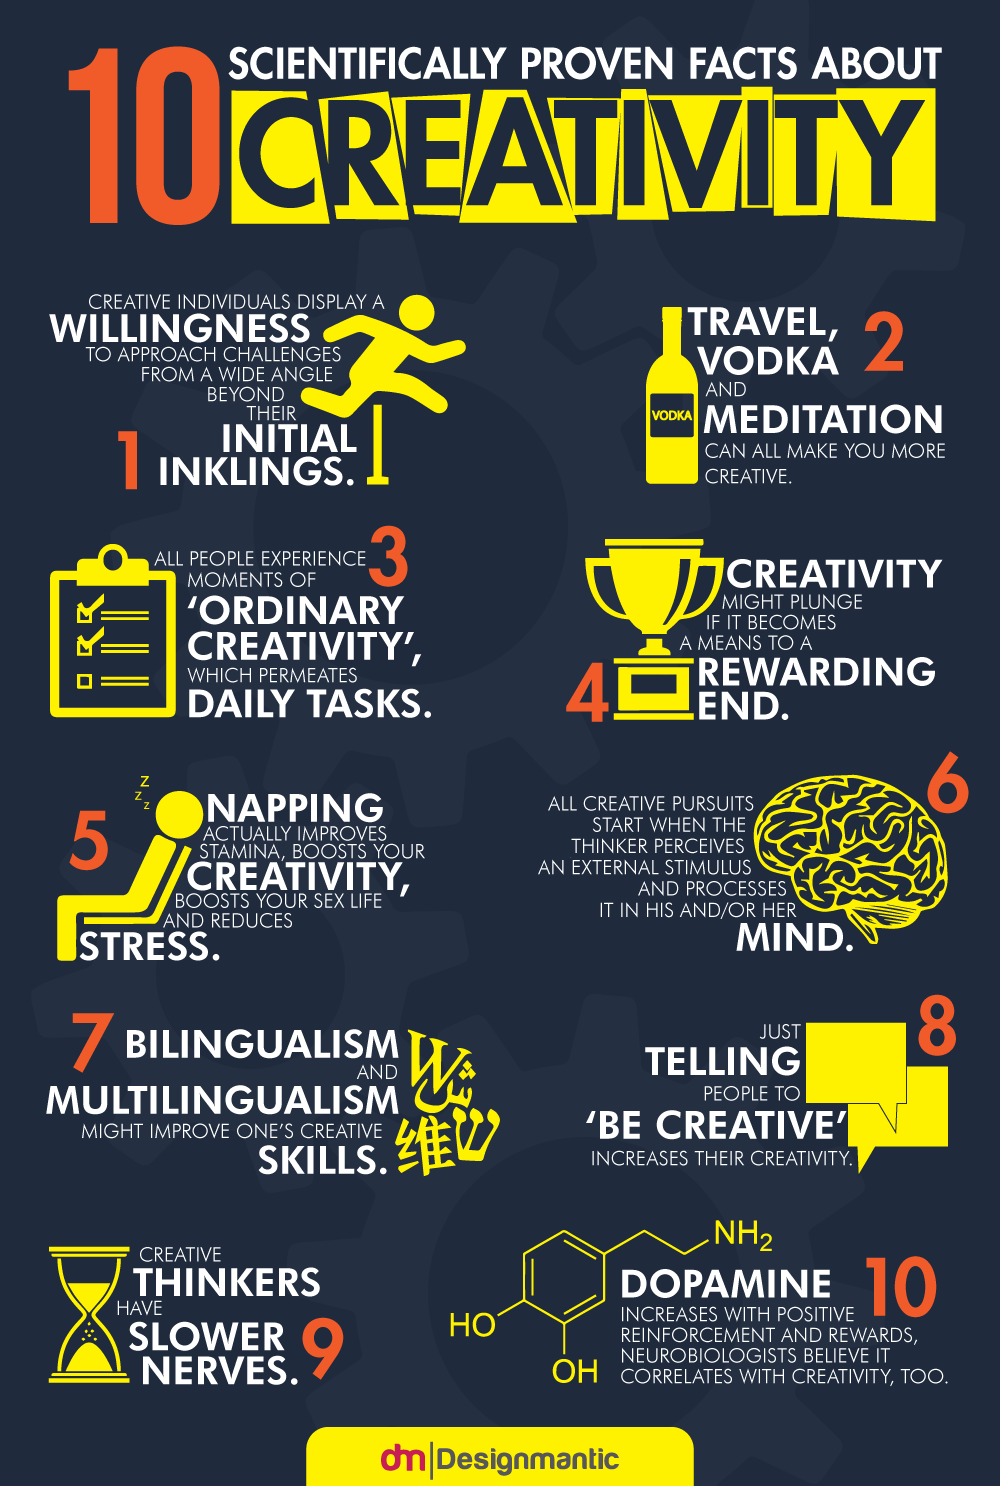 Facts About Creativity